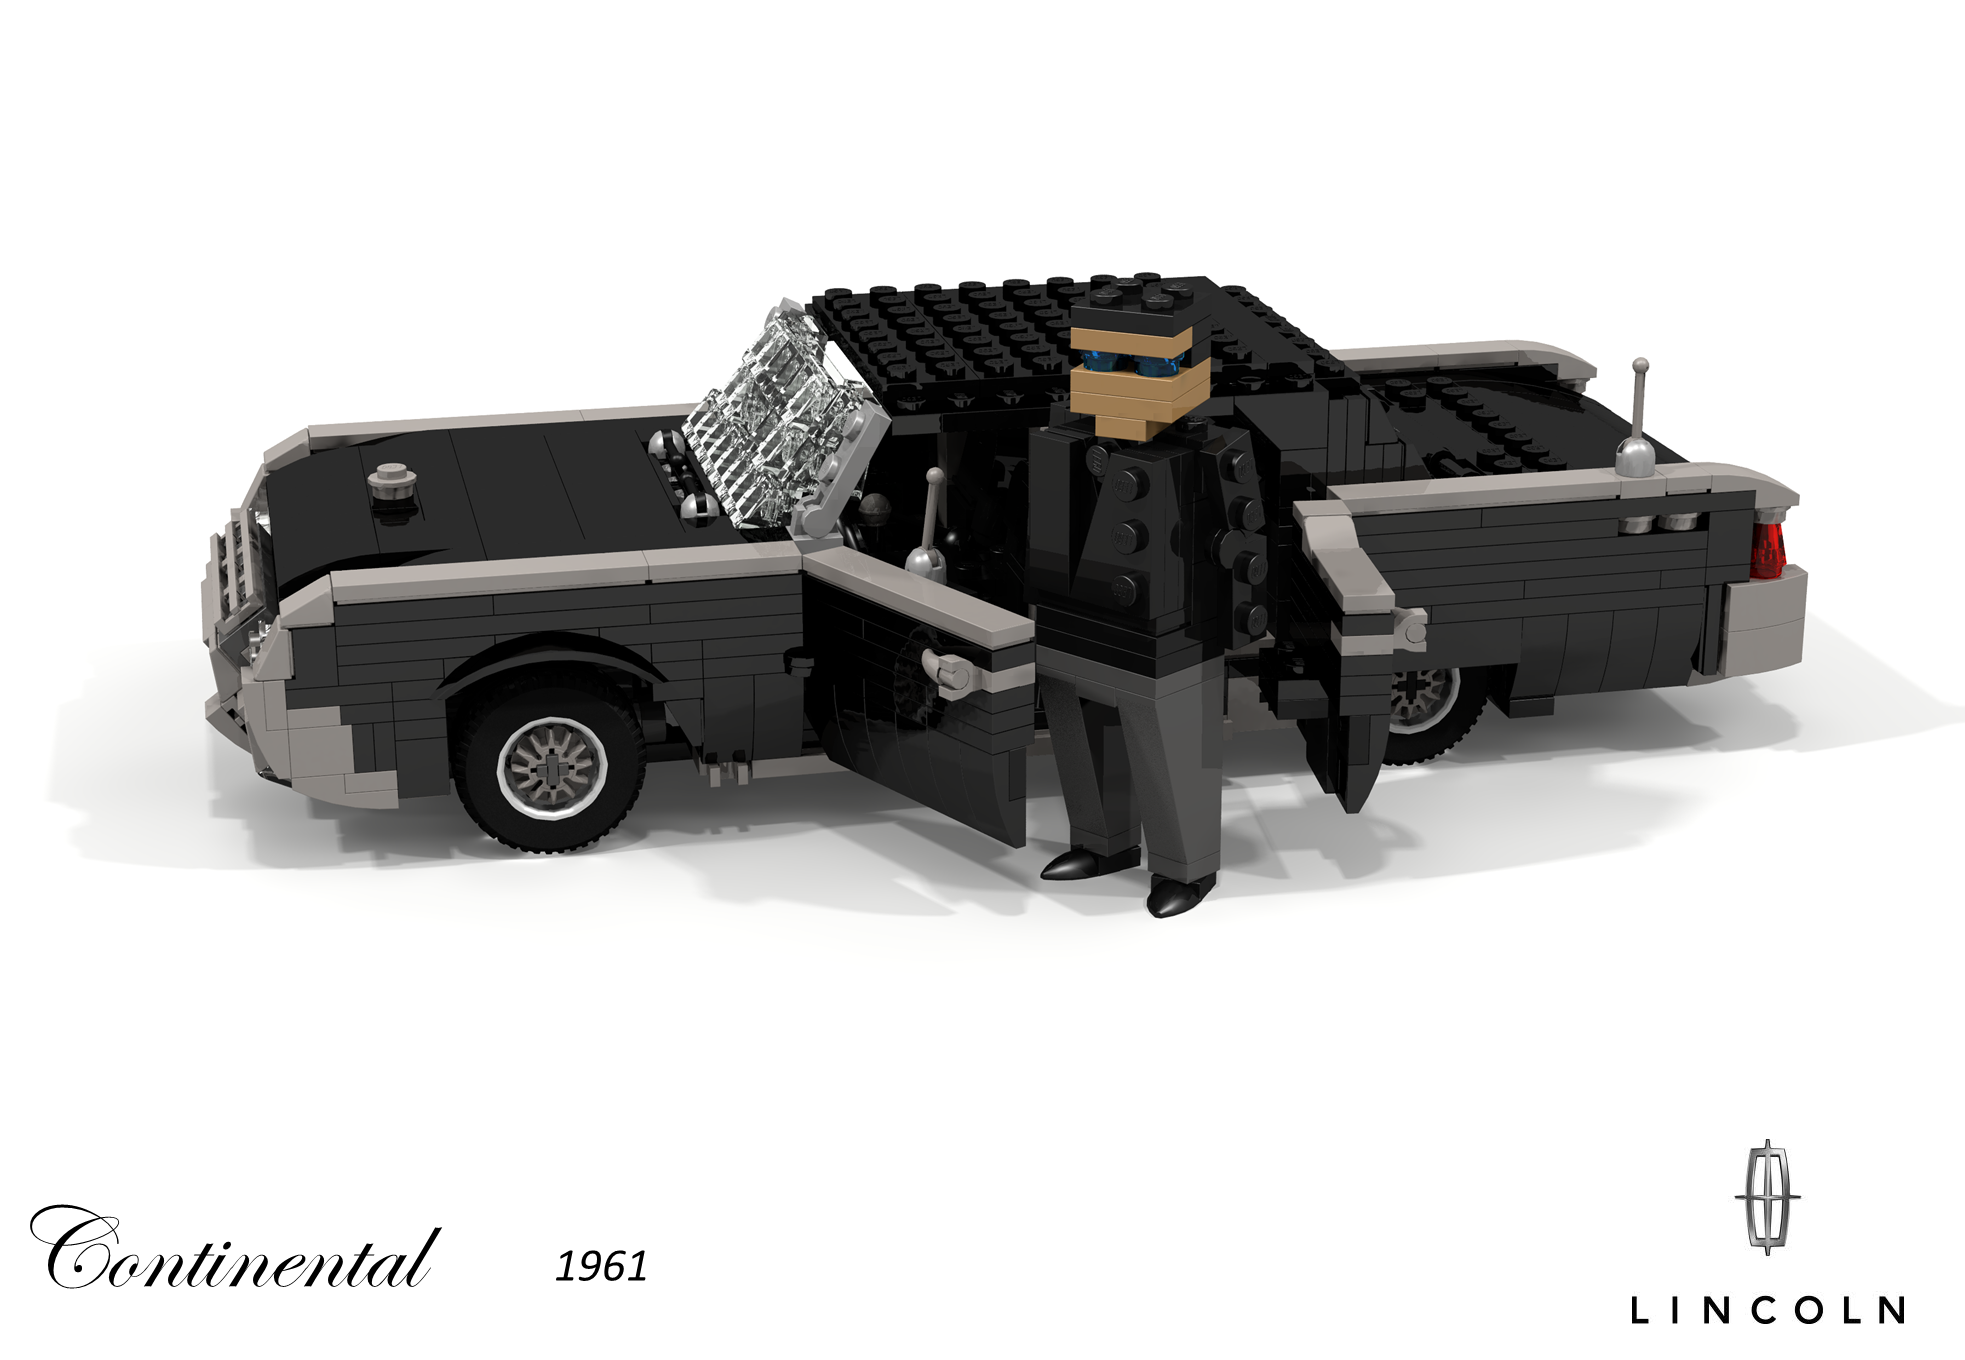 lincoln_1961_continental_12.png